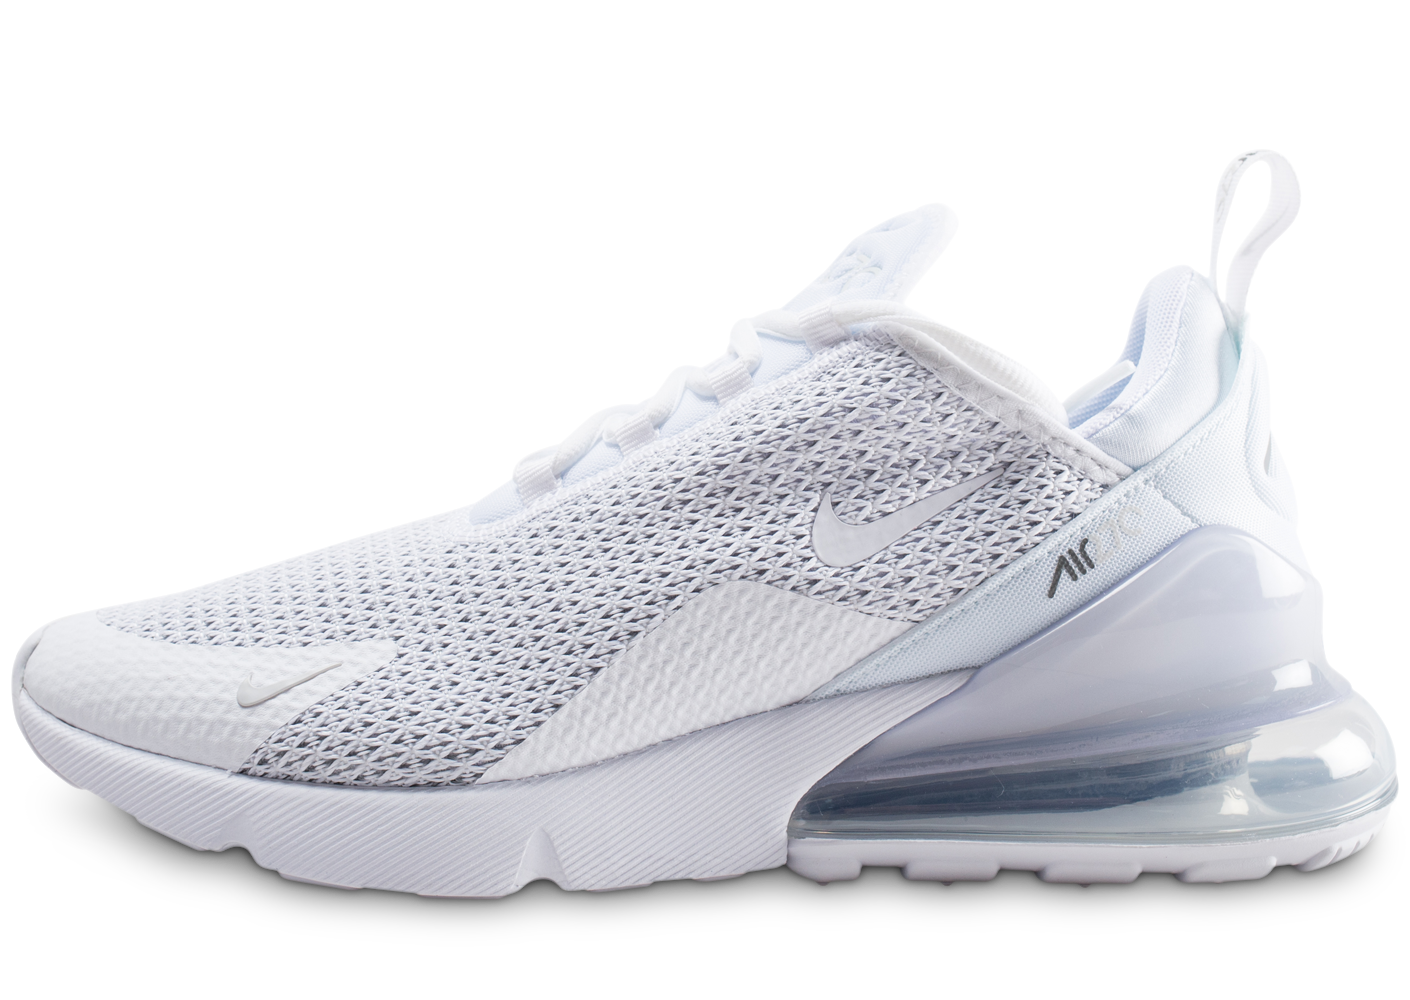 hot sale online b3a54 8a19d Nike homme air max 270 blanc argent baskets